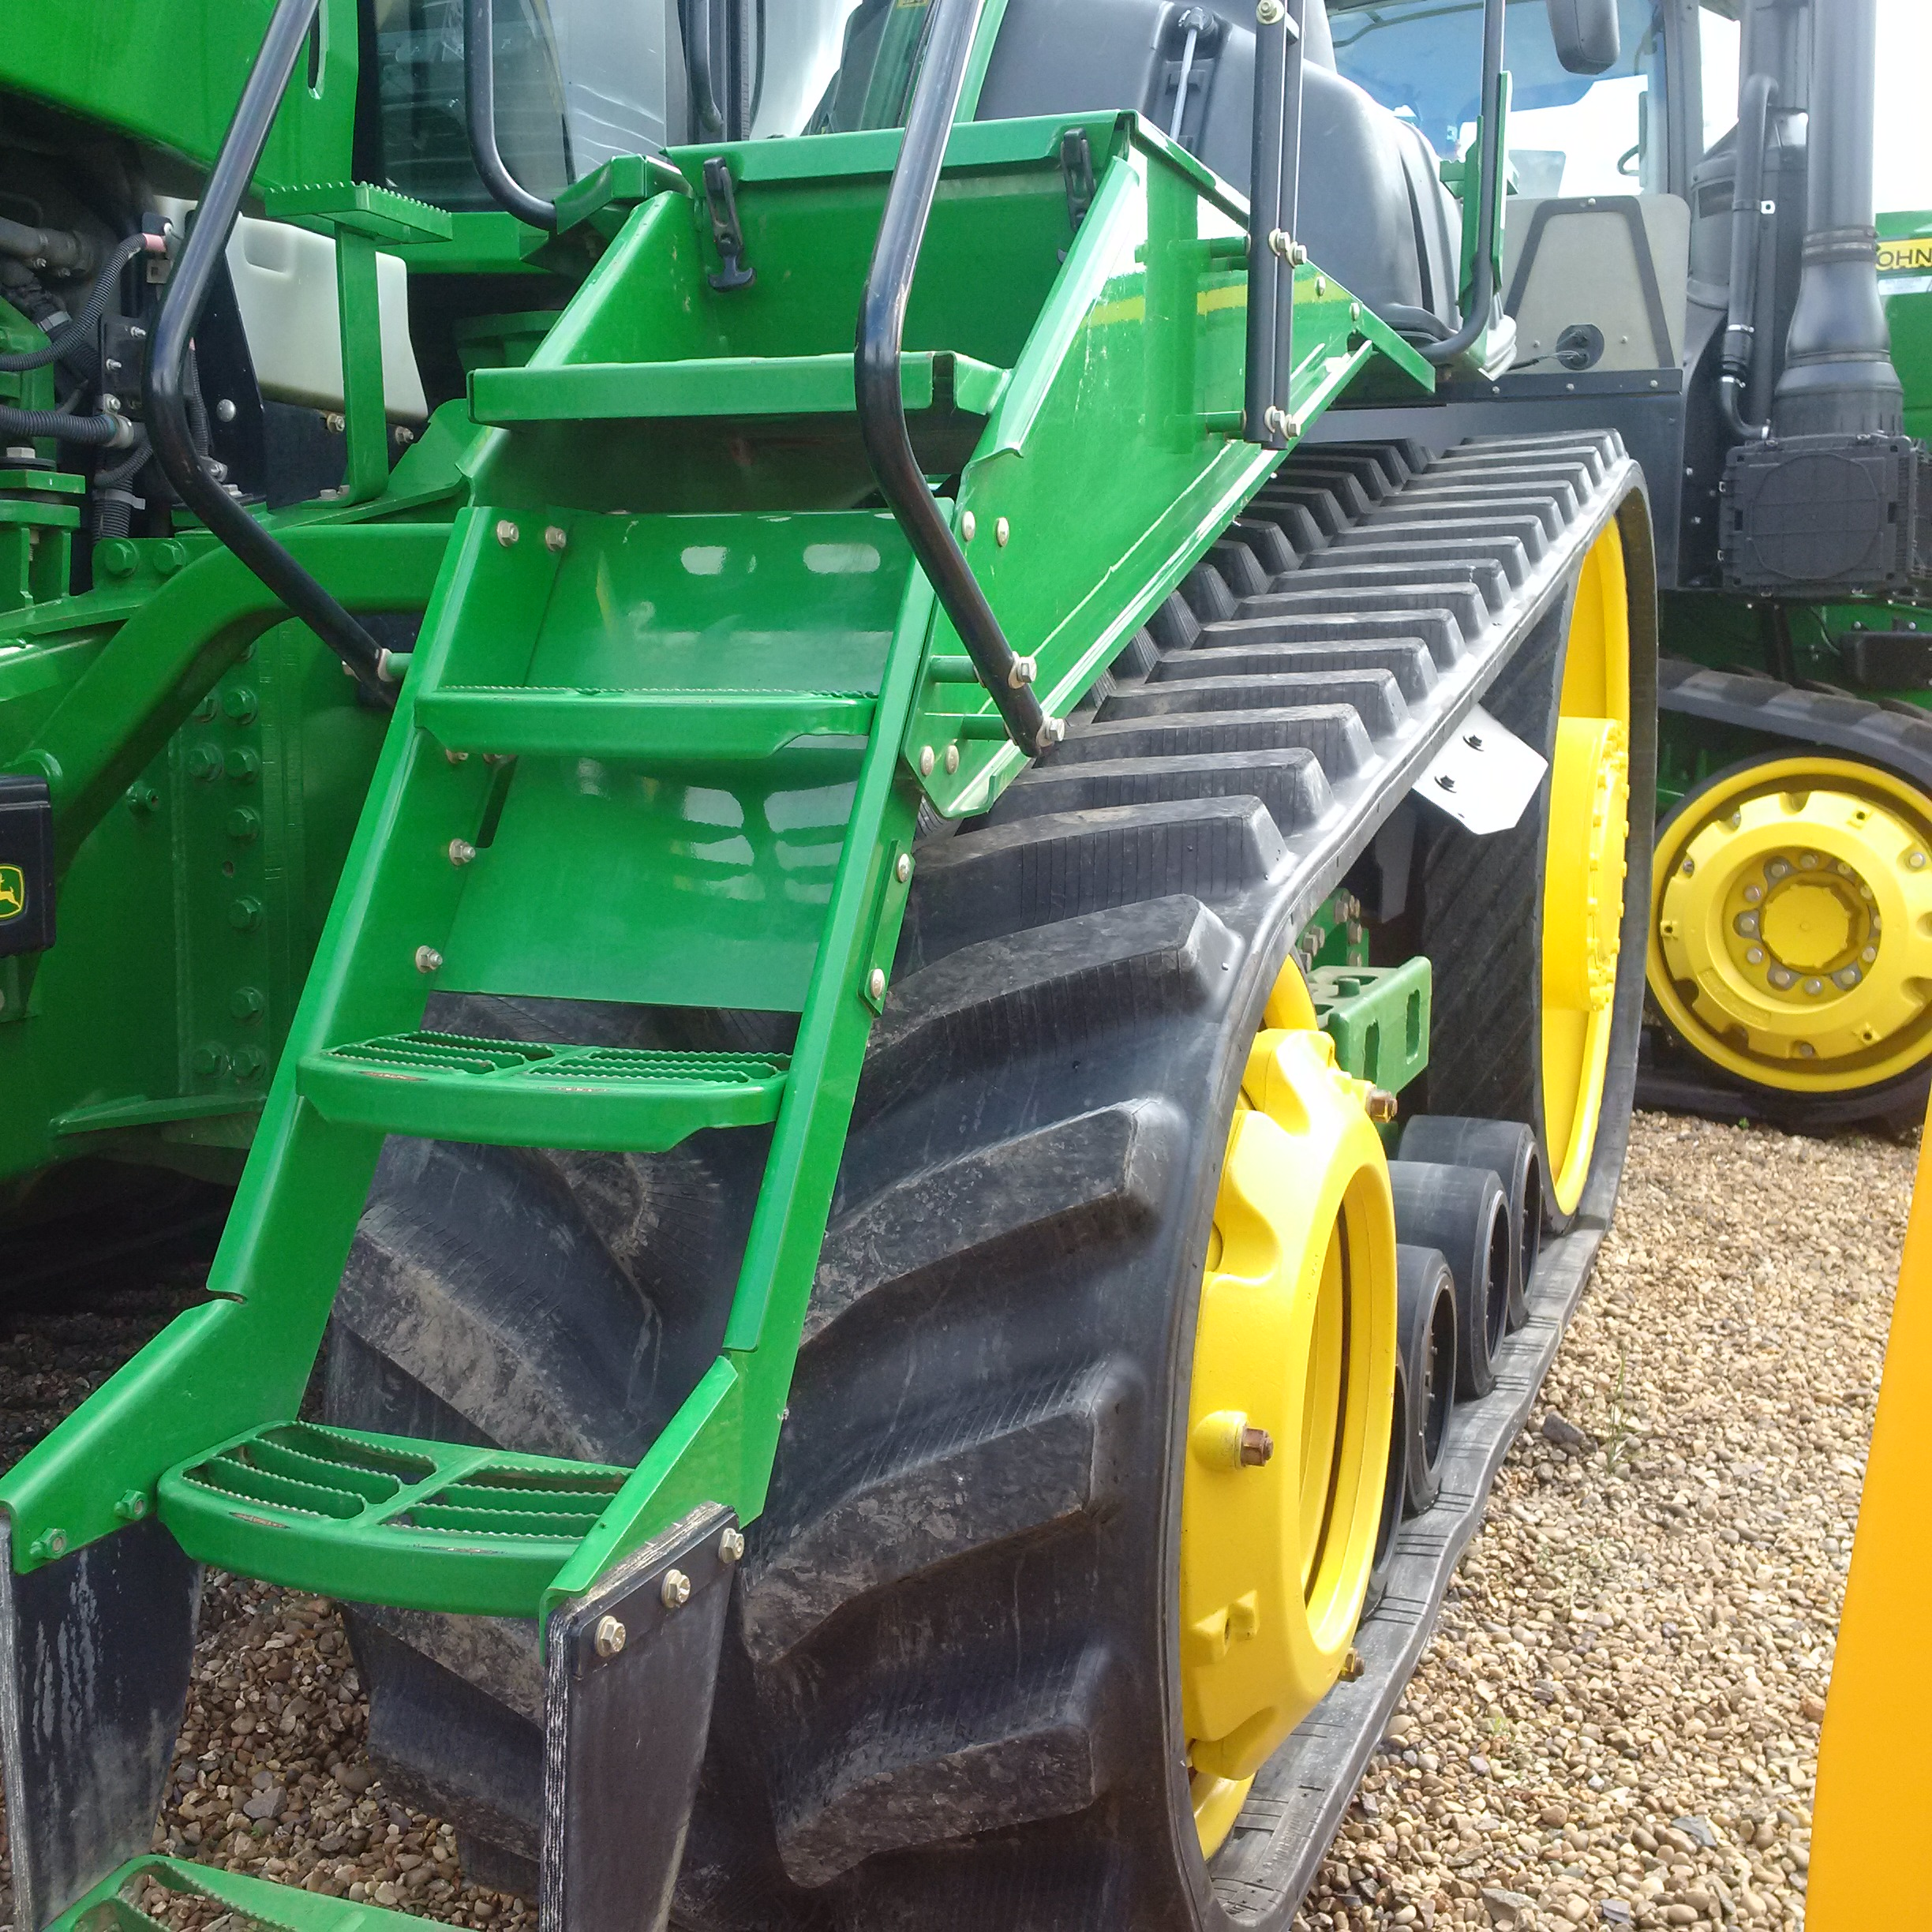 Bridgestone Series 6 tracks fitted to JD 9530RT